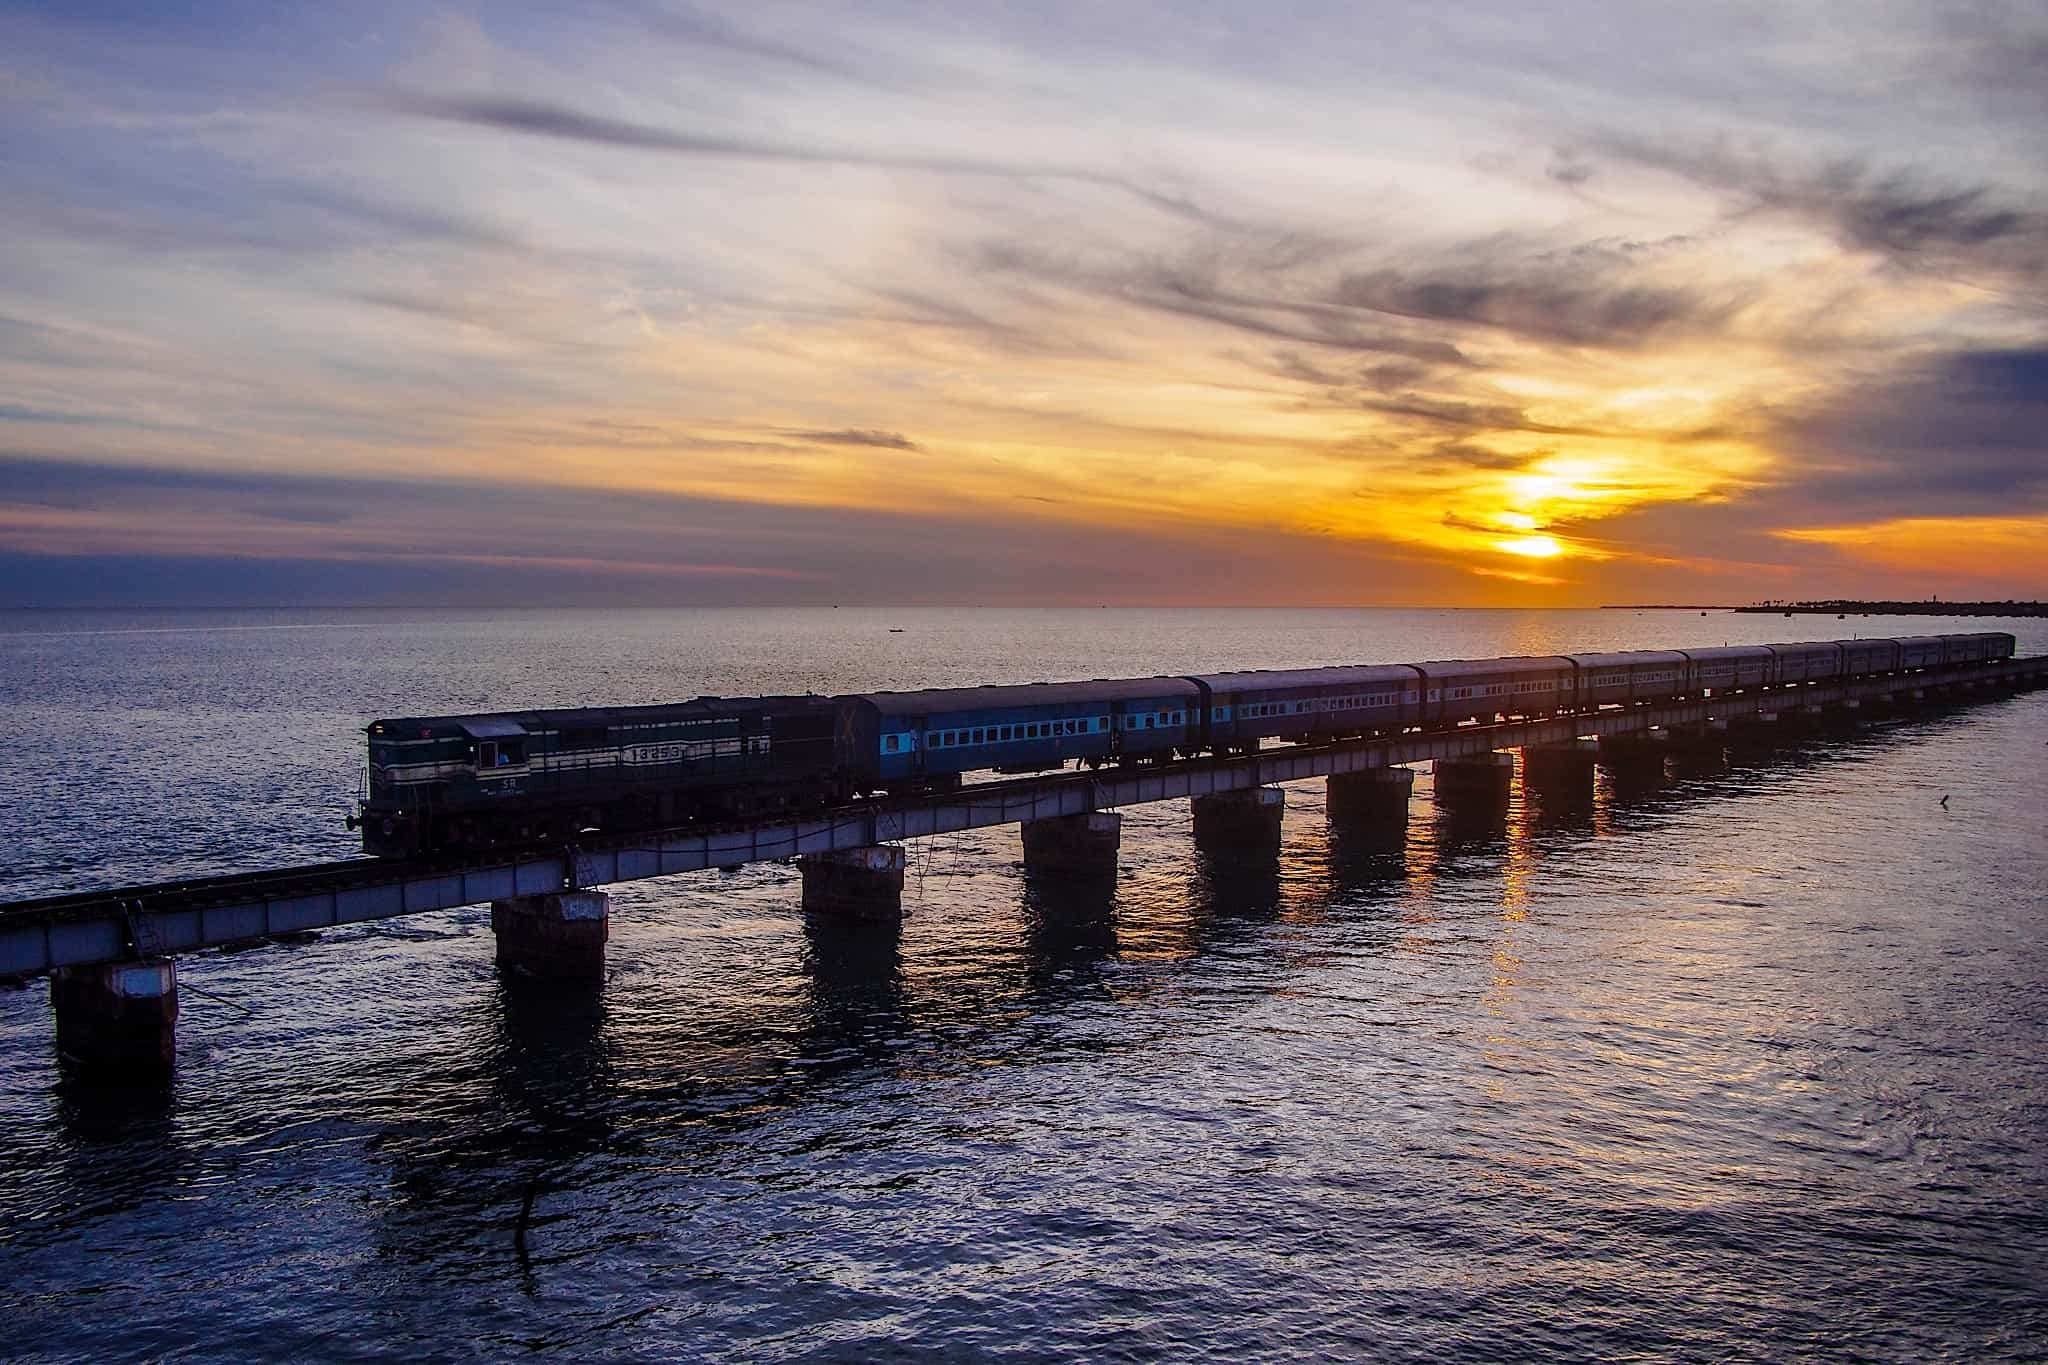 Sunrise from the Pamban Bridge